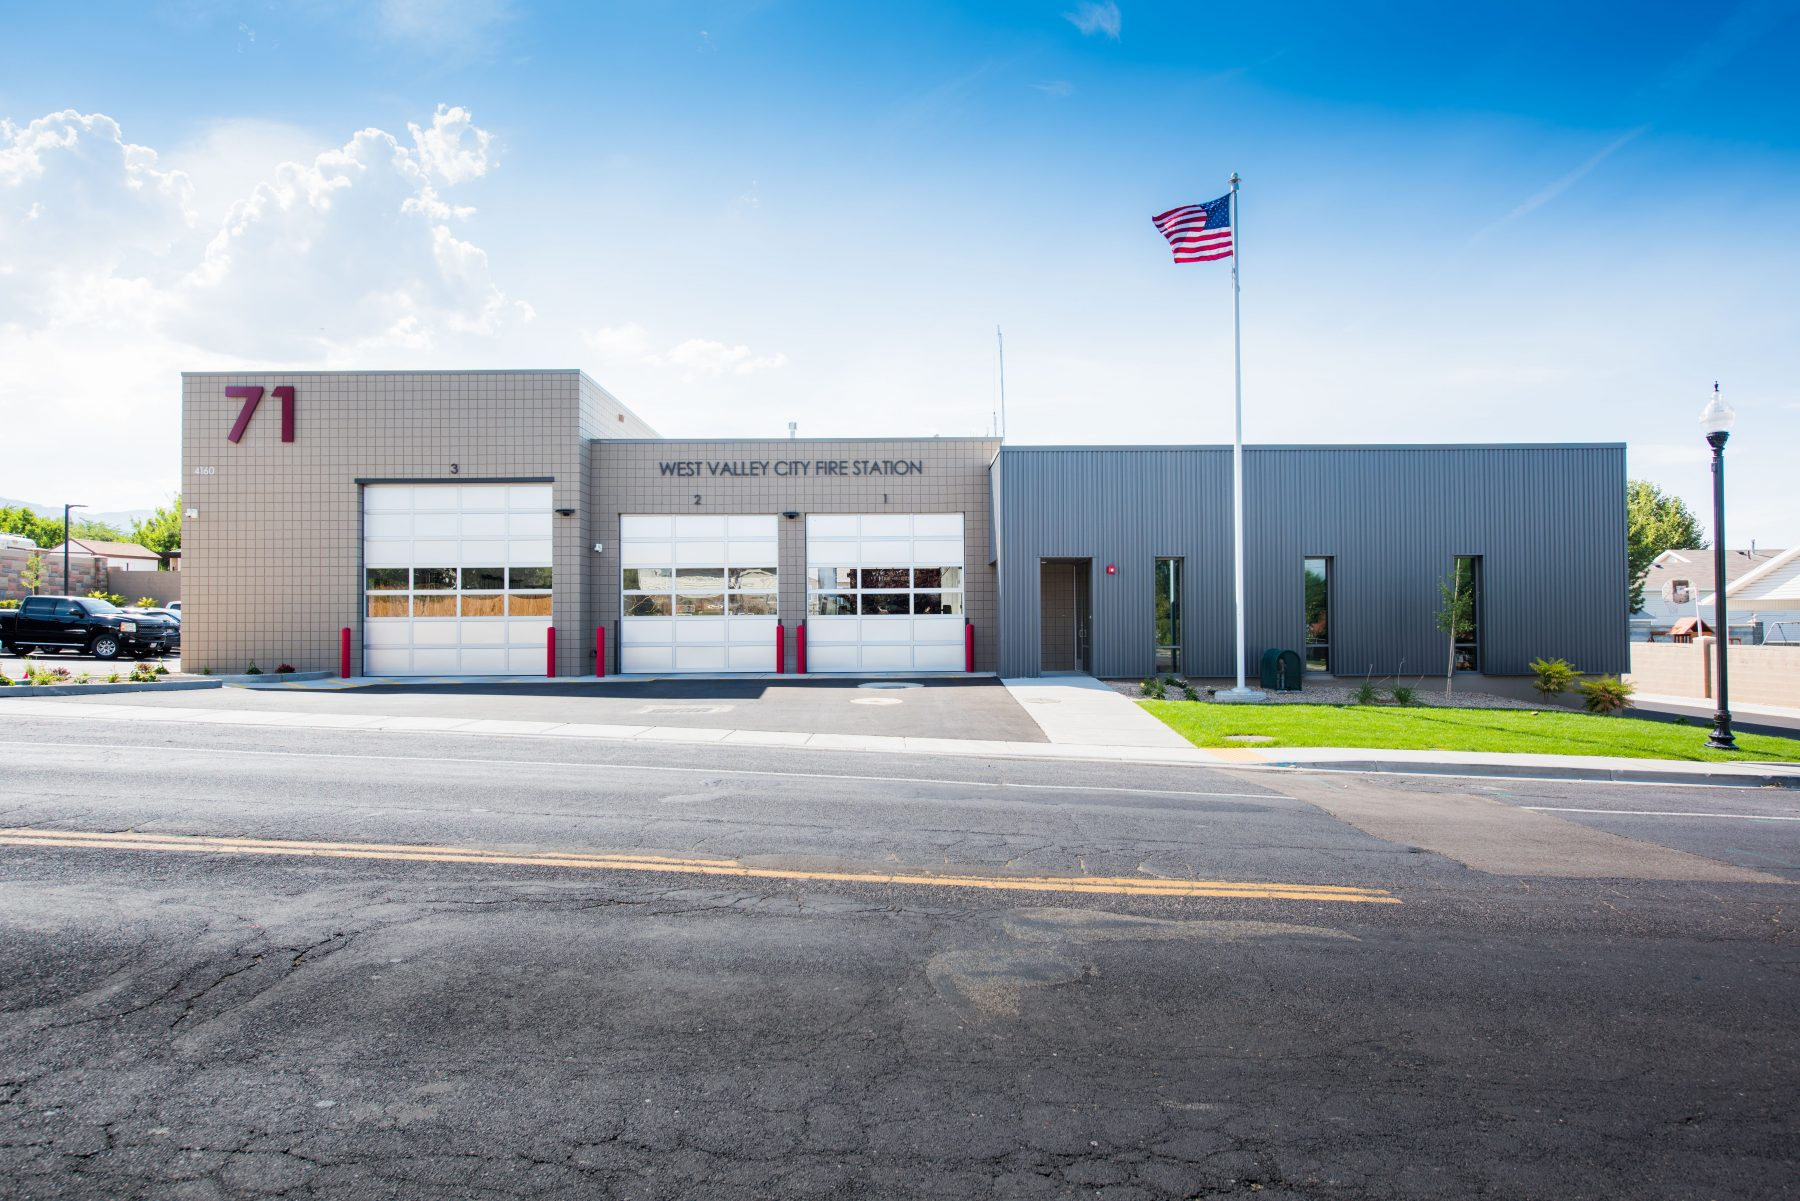 West Valley City Fire Station #71